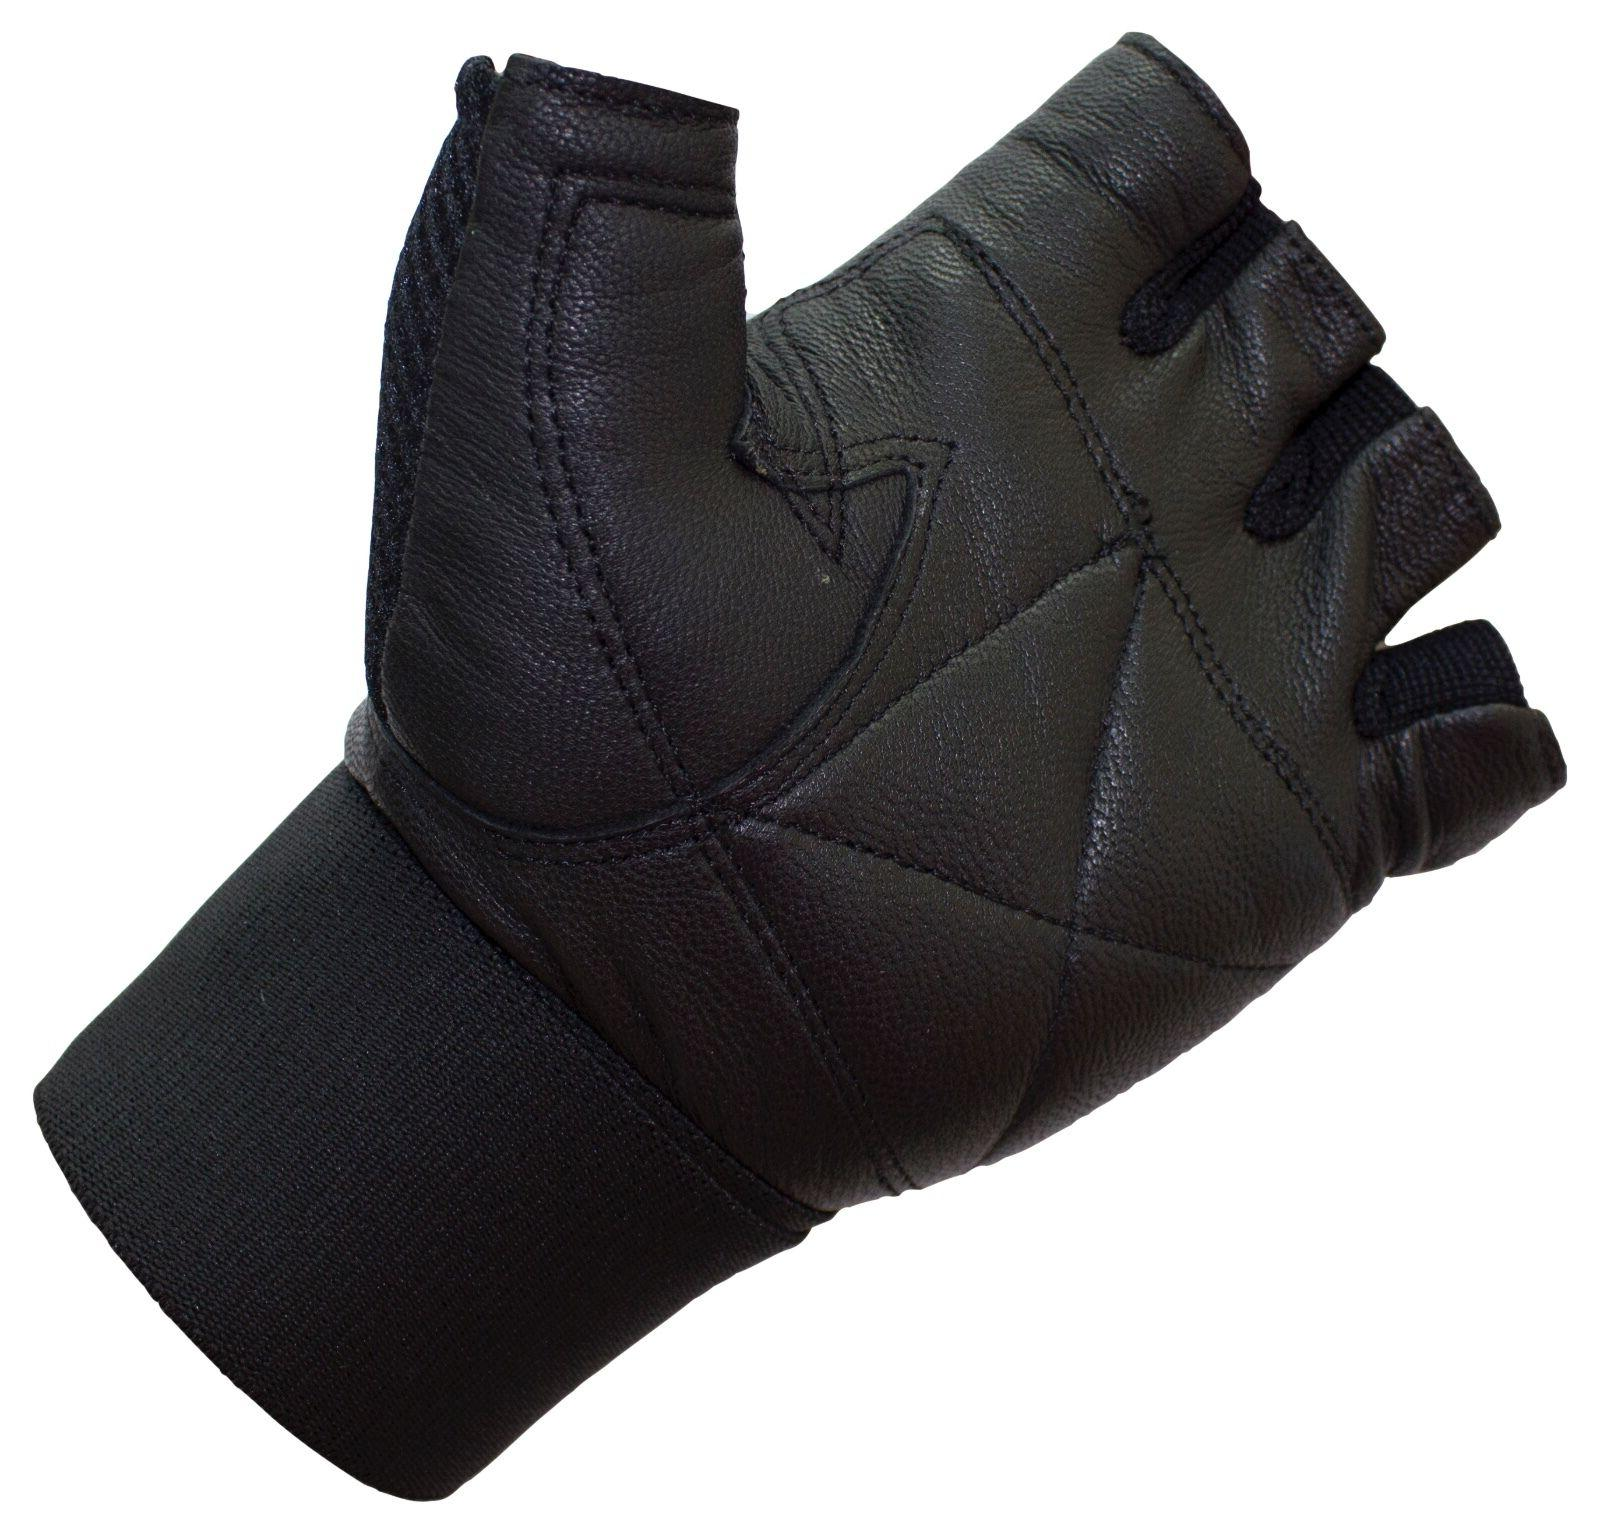 Gym Weight Exercise Gloves with 12 iWrist Support